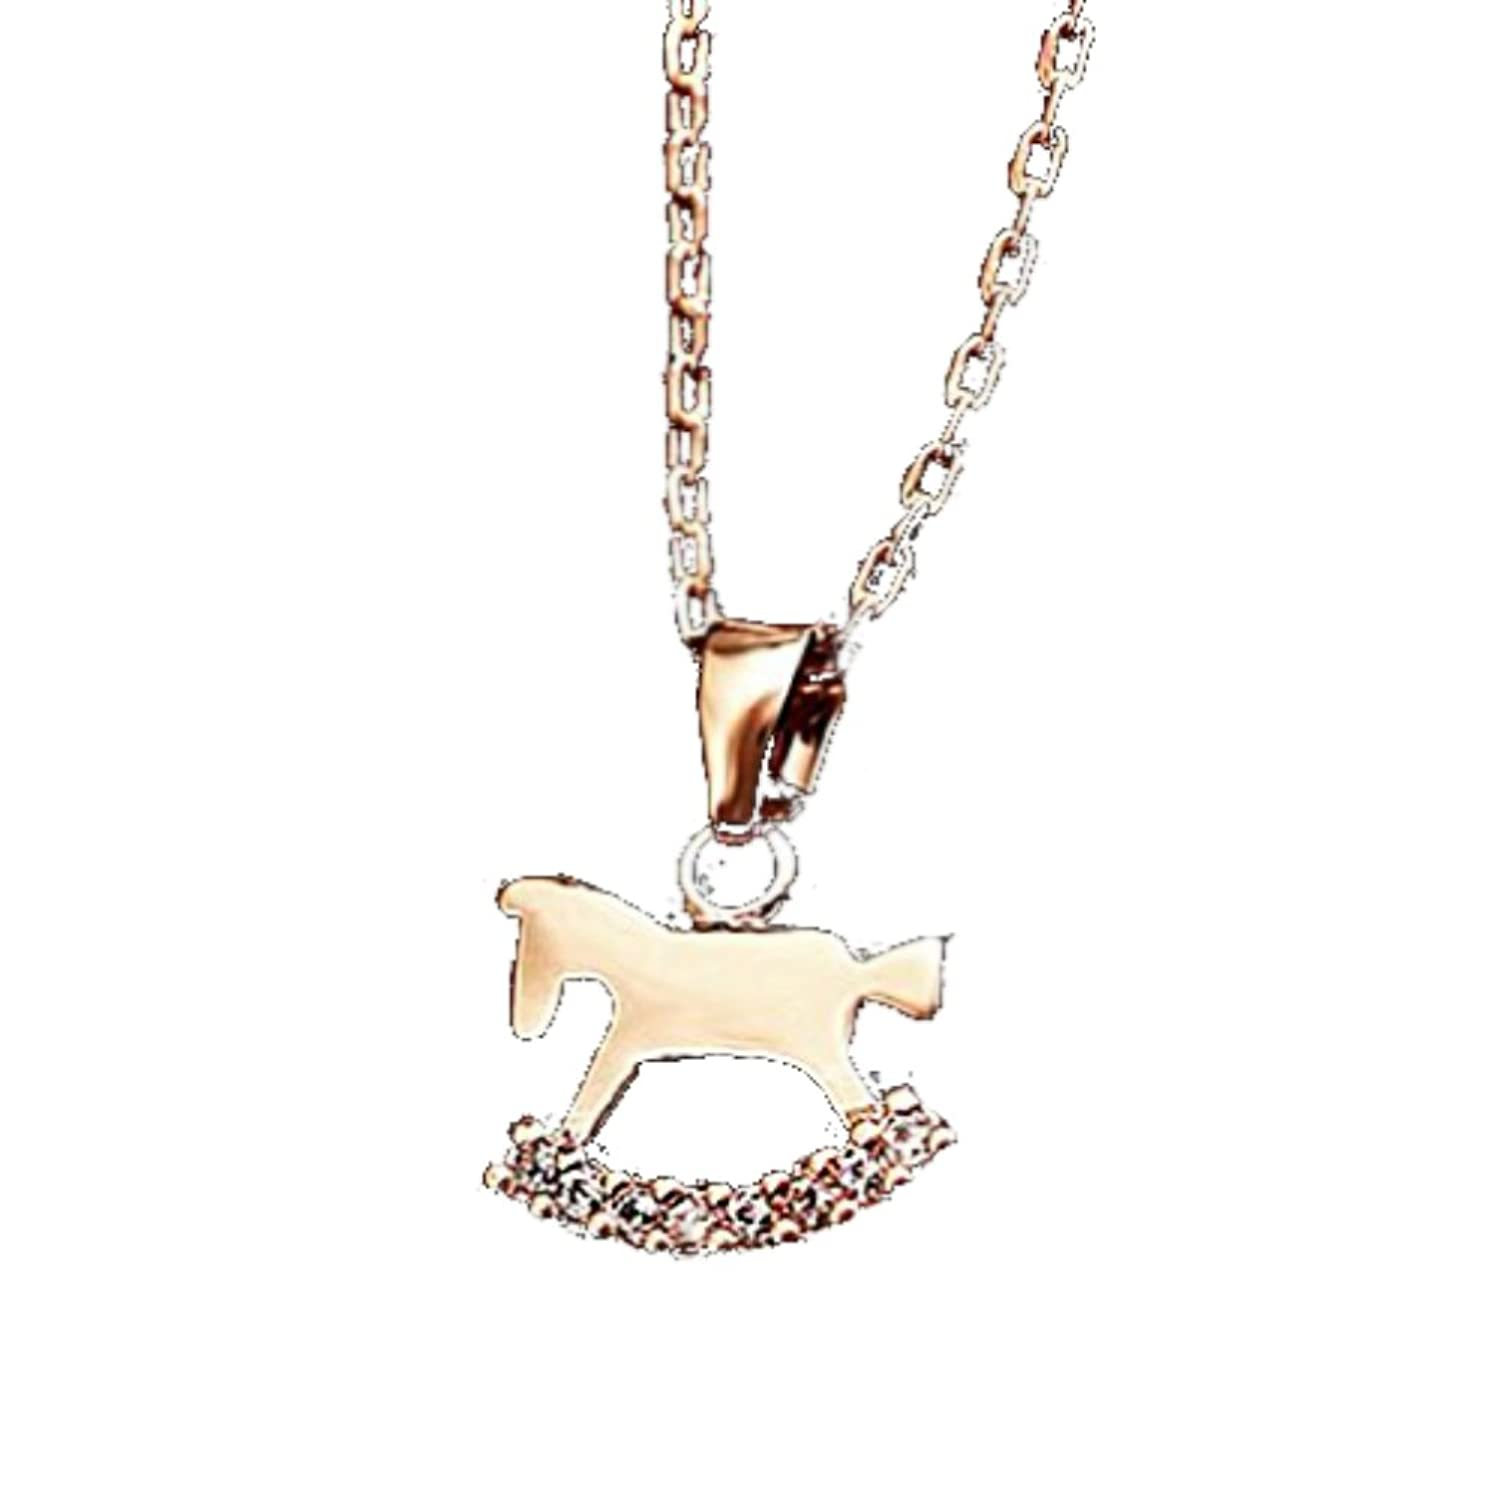 14K Rocking Horse with Crystal Pave Pendant Necklace - Rose Gold / White Gold Plated